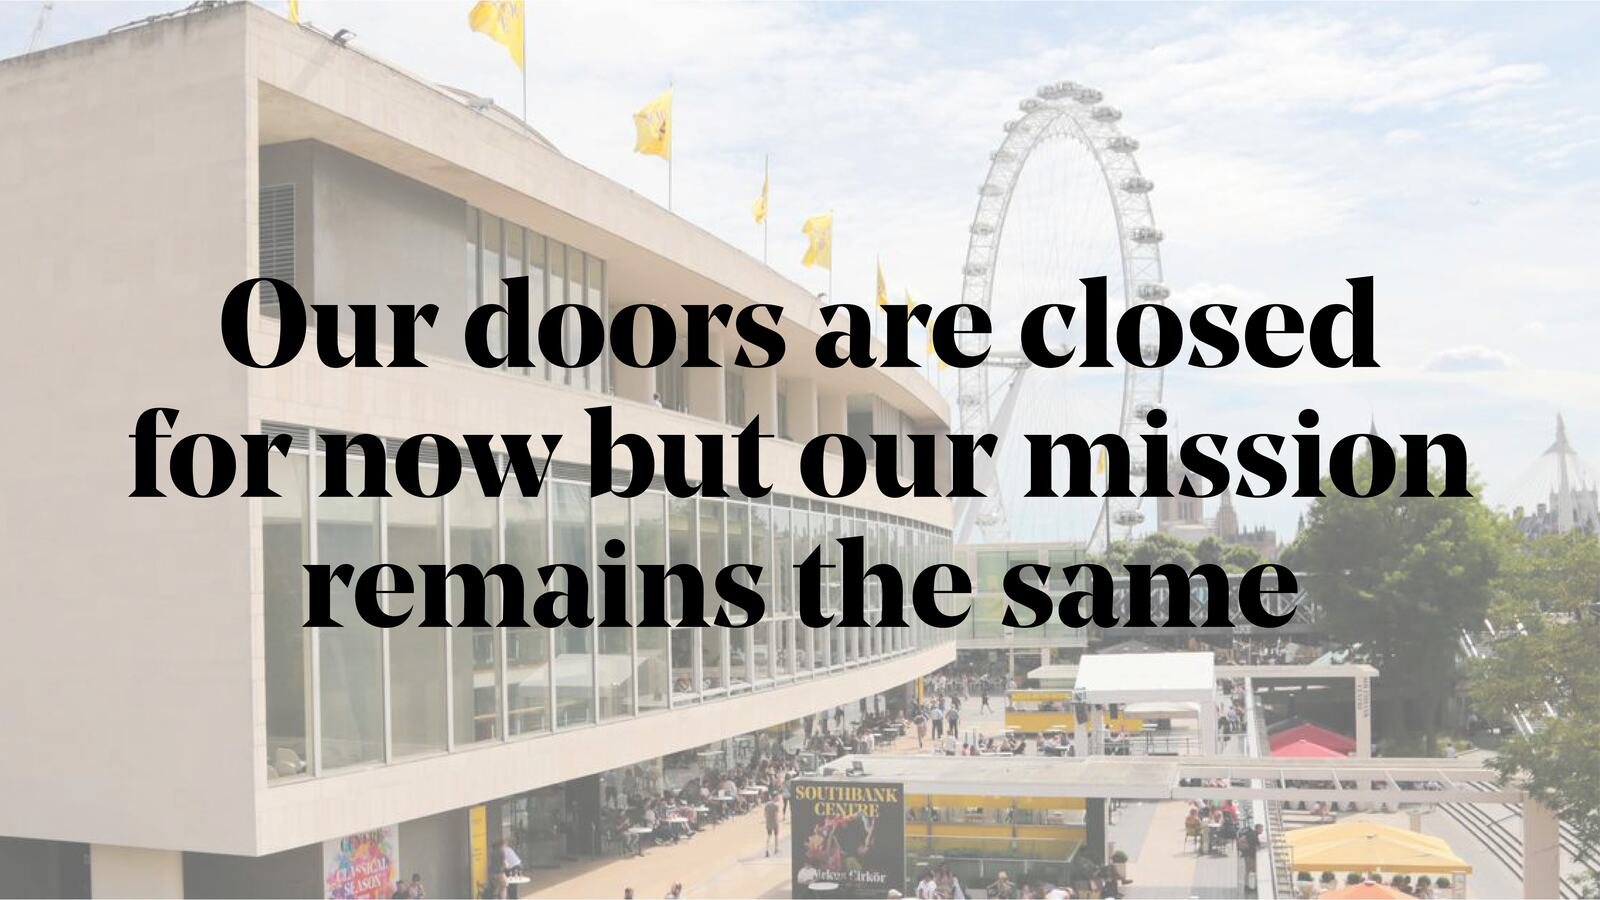 Our doors are closed for now but our mission remains the same